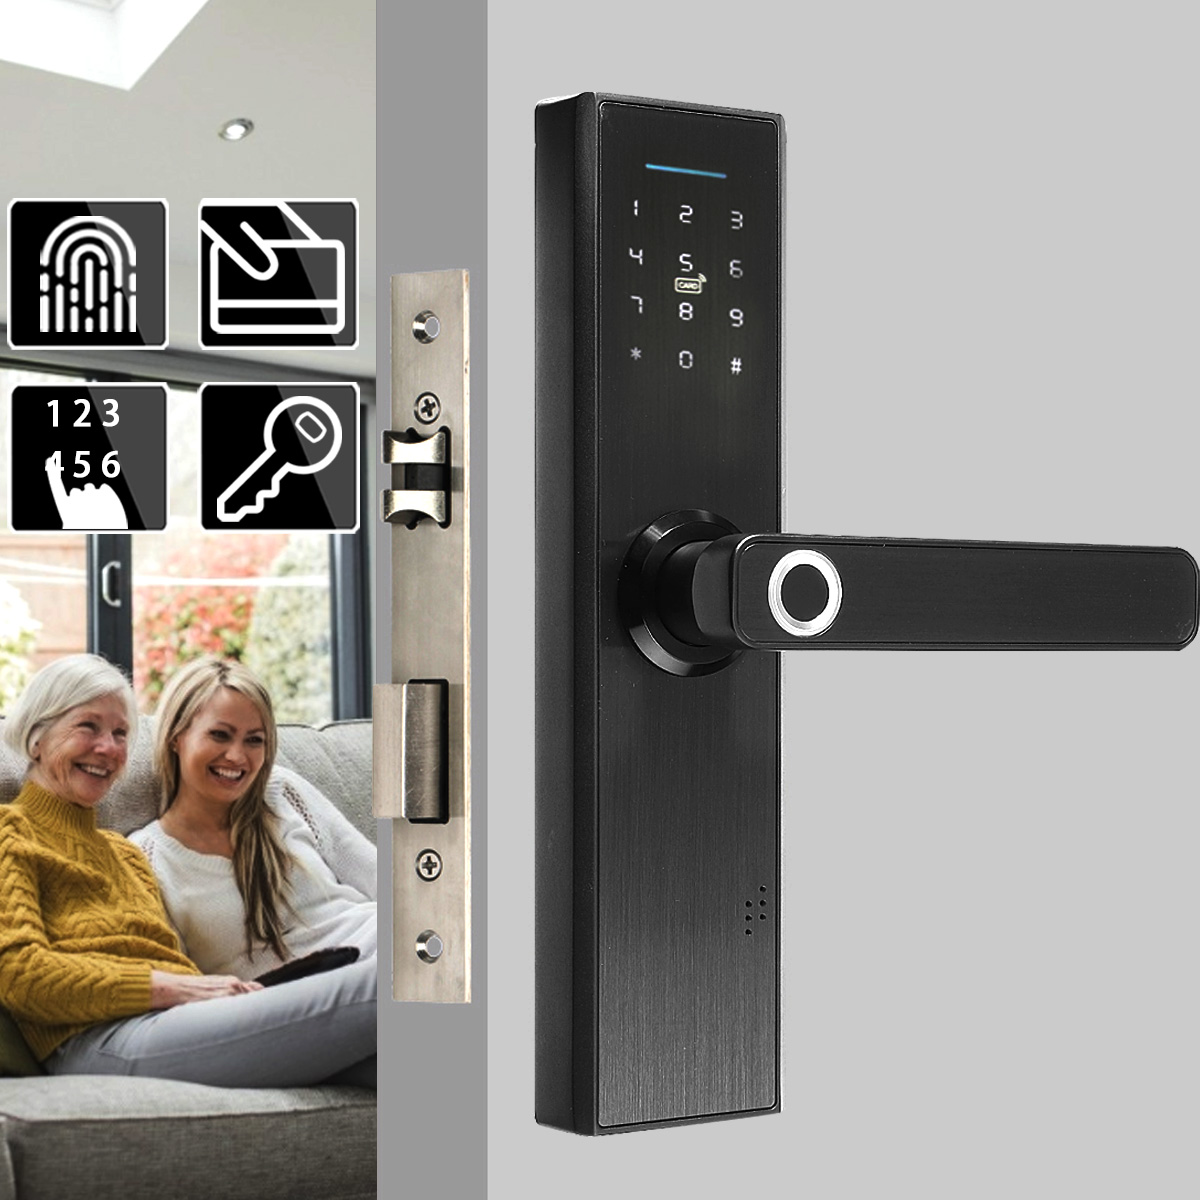 Electronic Door Lock Biometric Fingerprint / Digital Code / Smart Card / Key Touchable Screen Smart Door Lock For Home Hotel